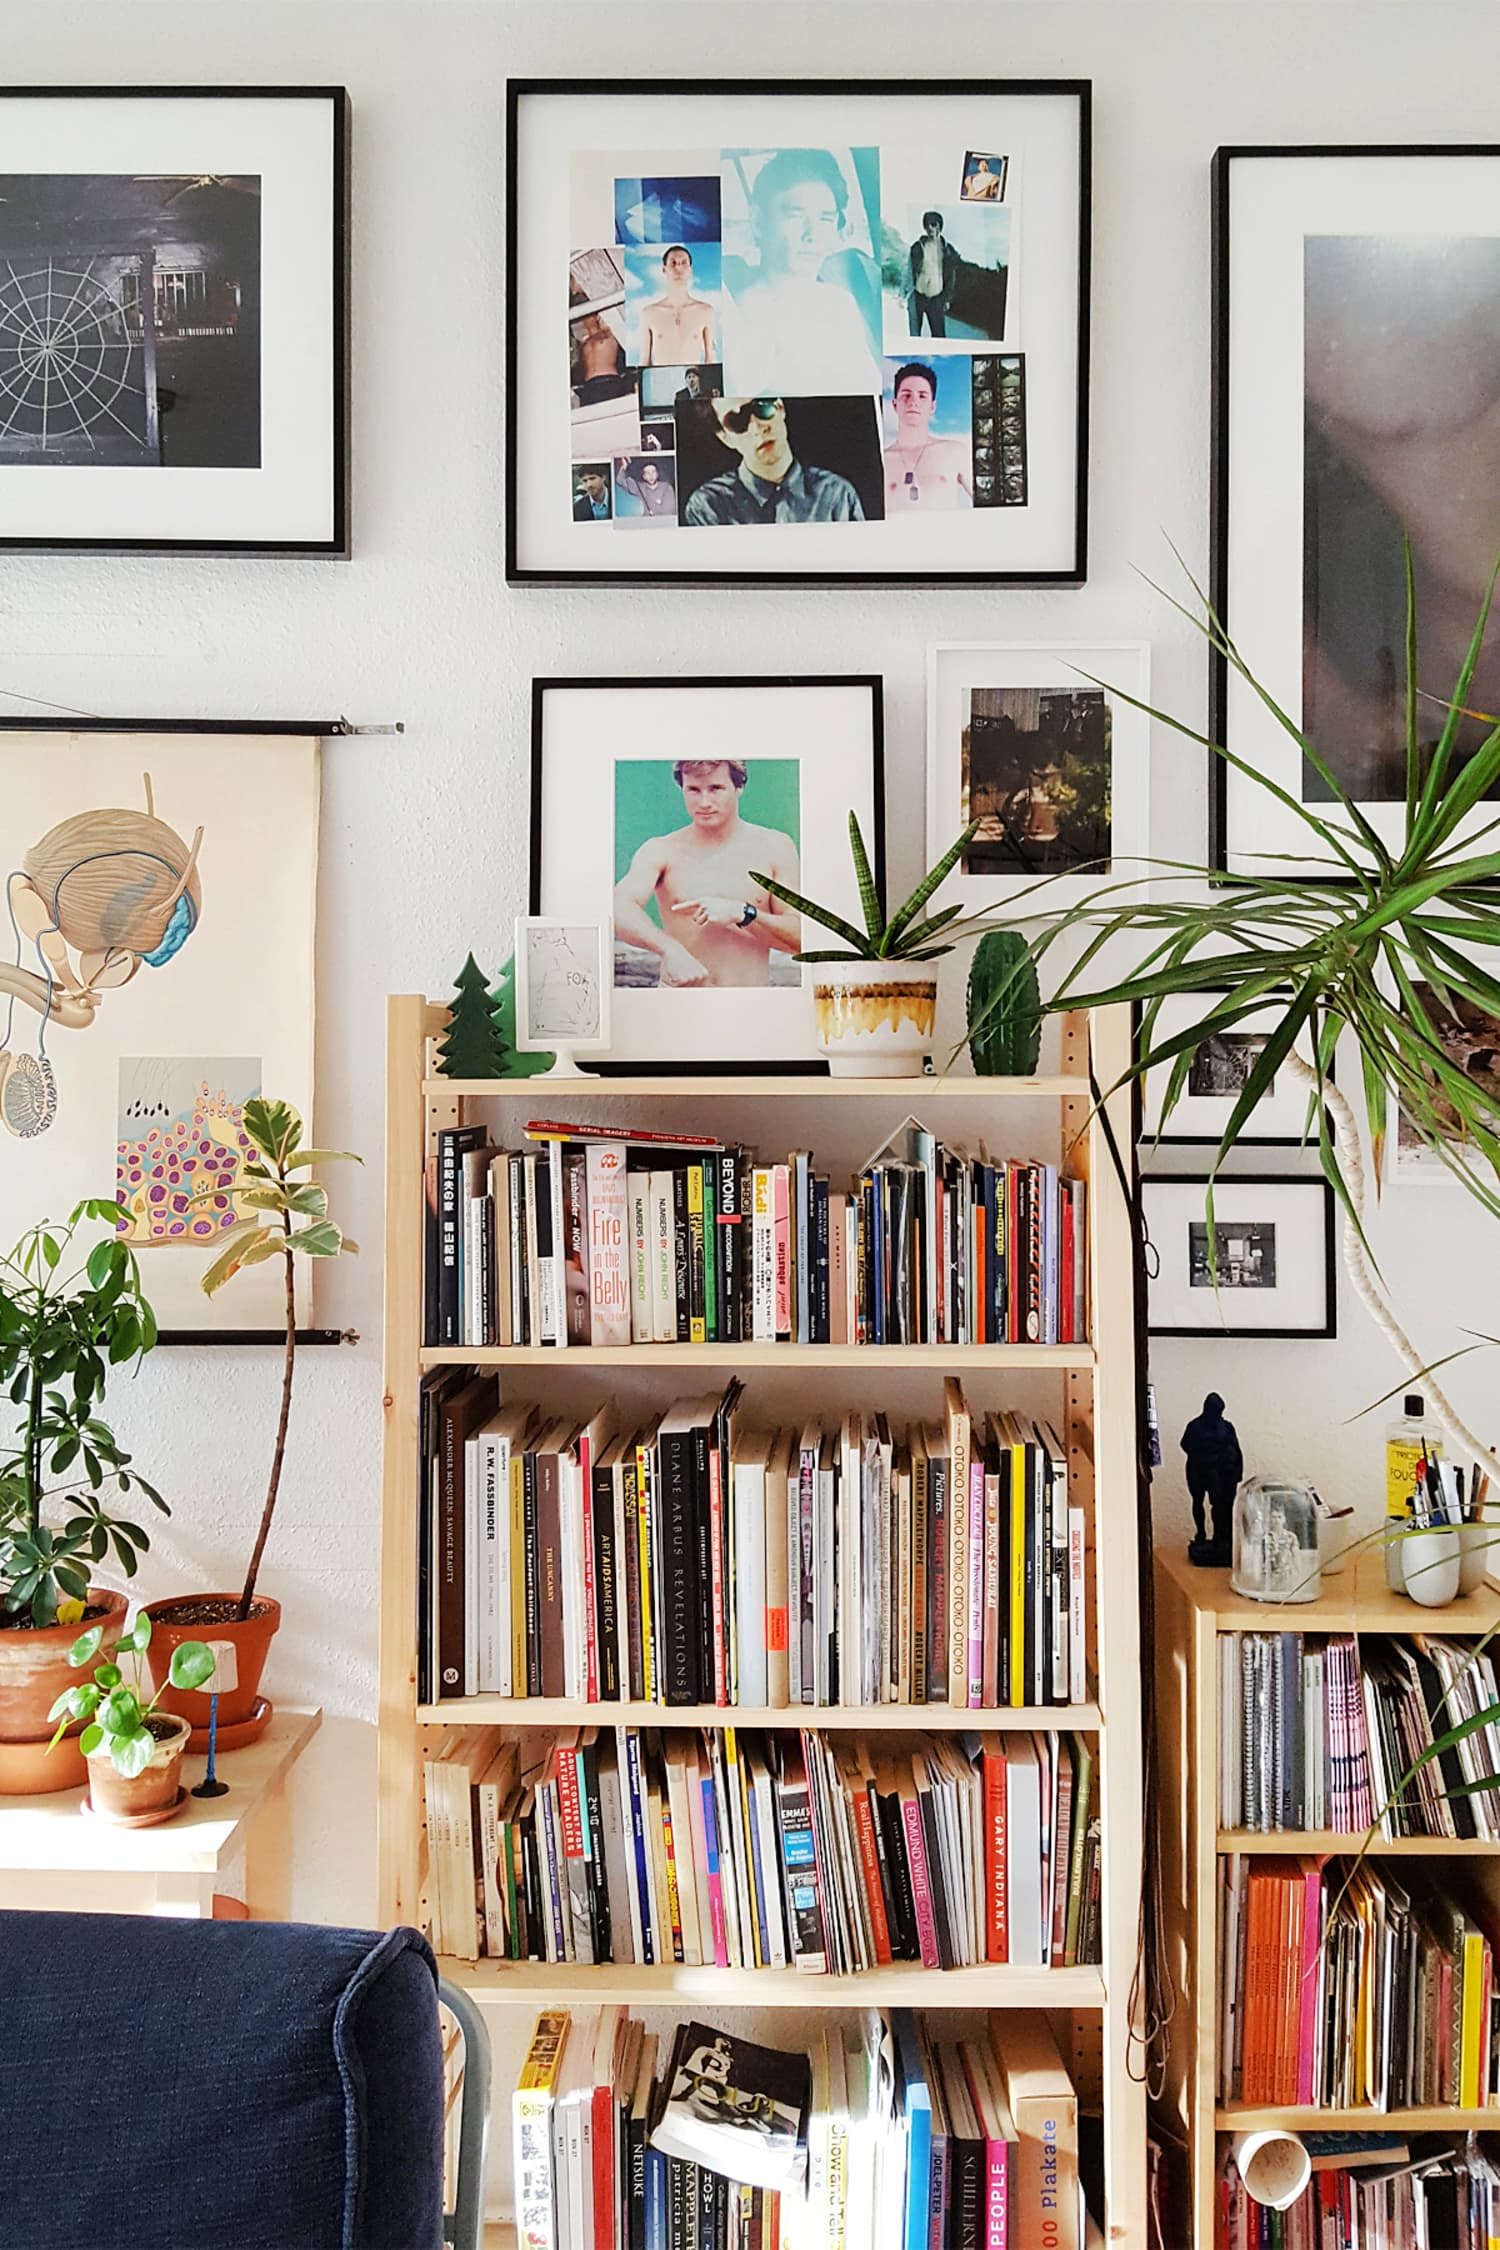 6 Family Photo Display Alternatives That Are as Clever as They Are Stylish